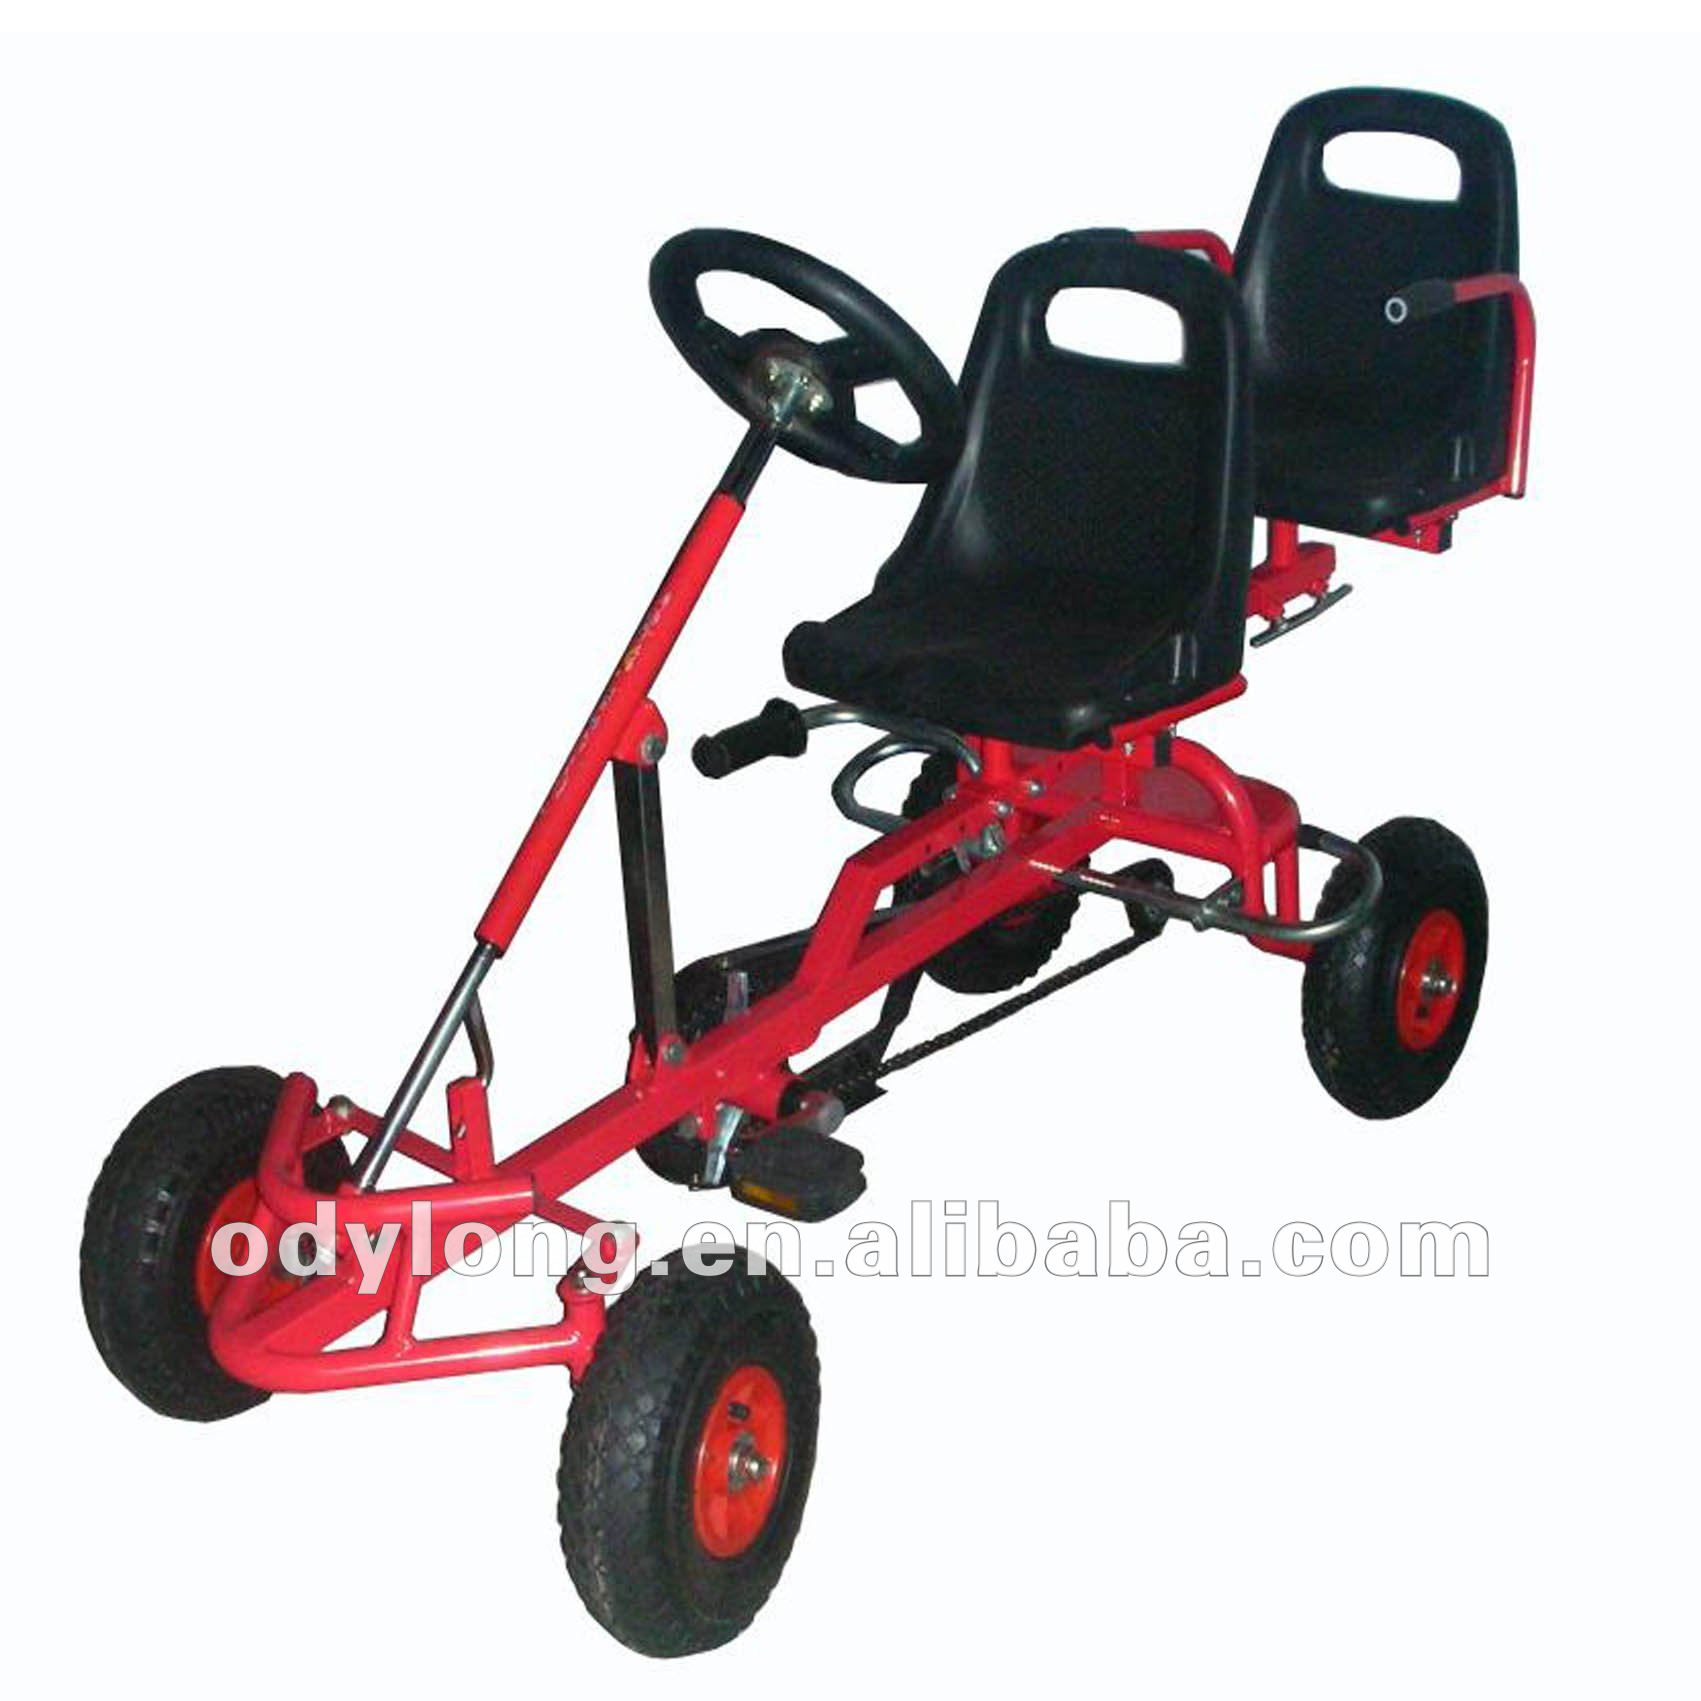 China Metal Pedal Cars For Kids Safety Control With Free Steering